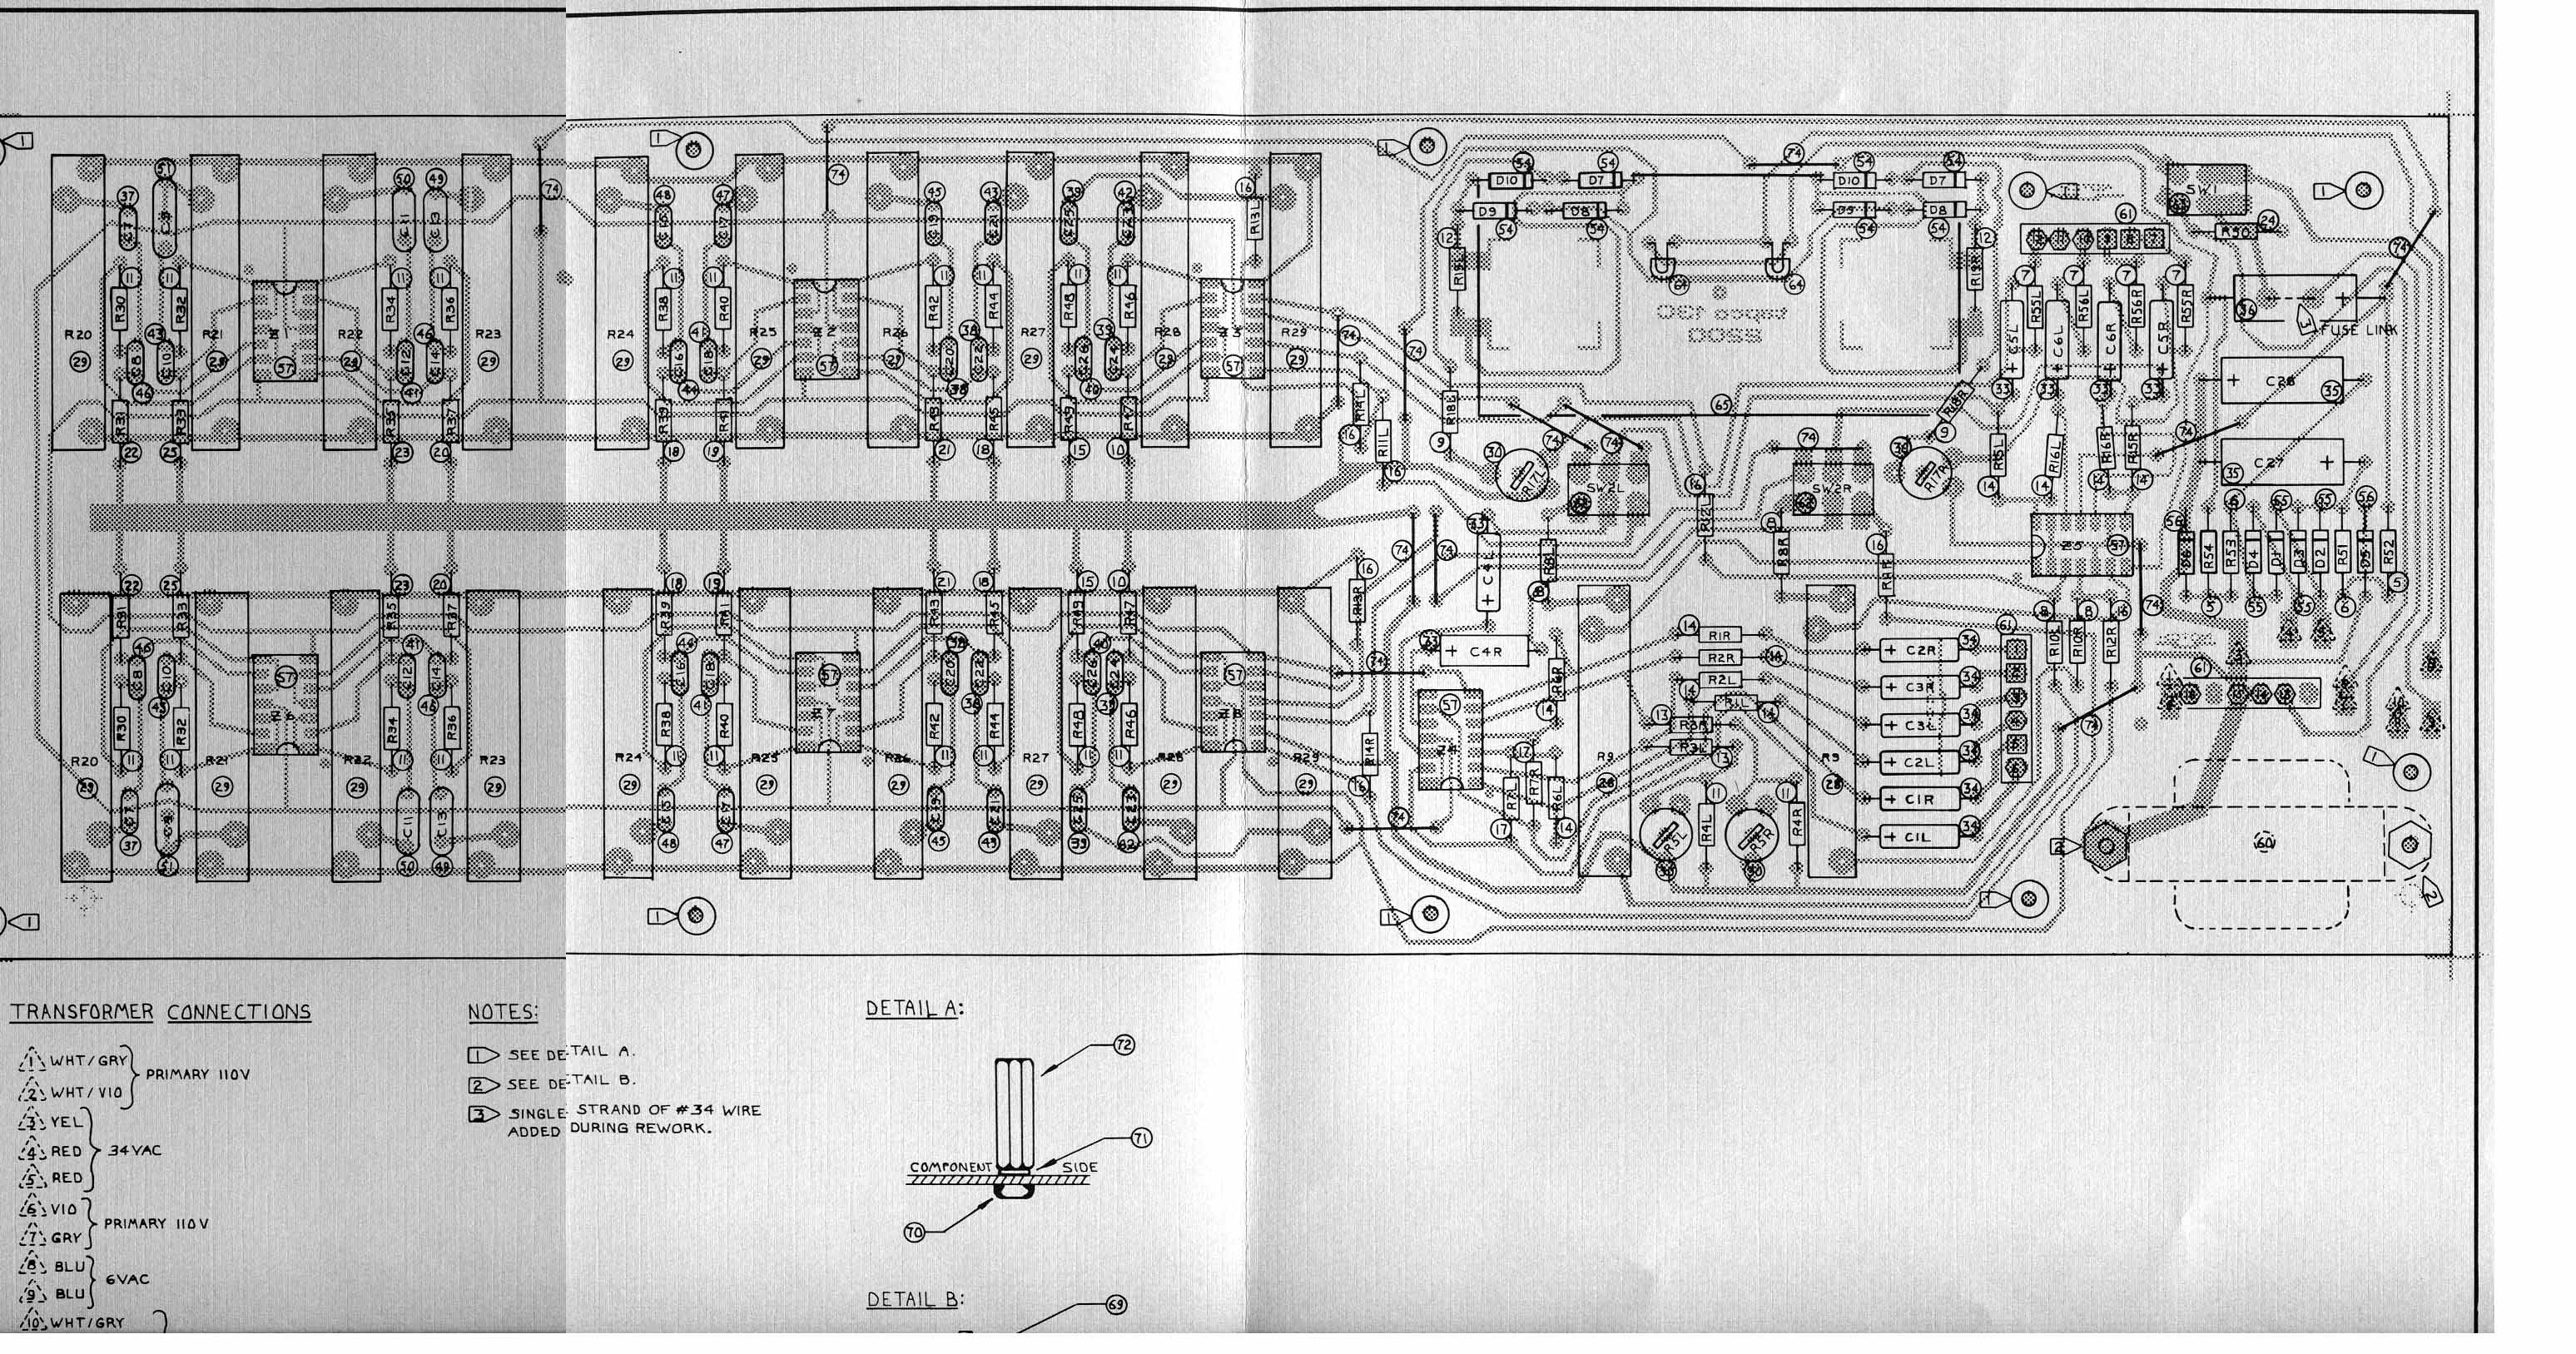 circuit schematic with 2200 on RCL further ES 180 besides Circuit moreover Sld041 besides 28522633.